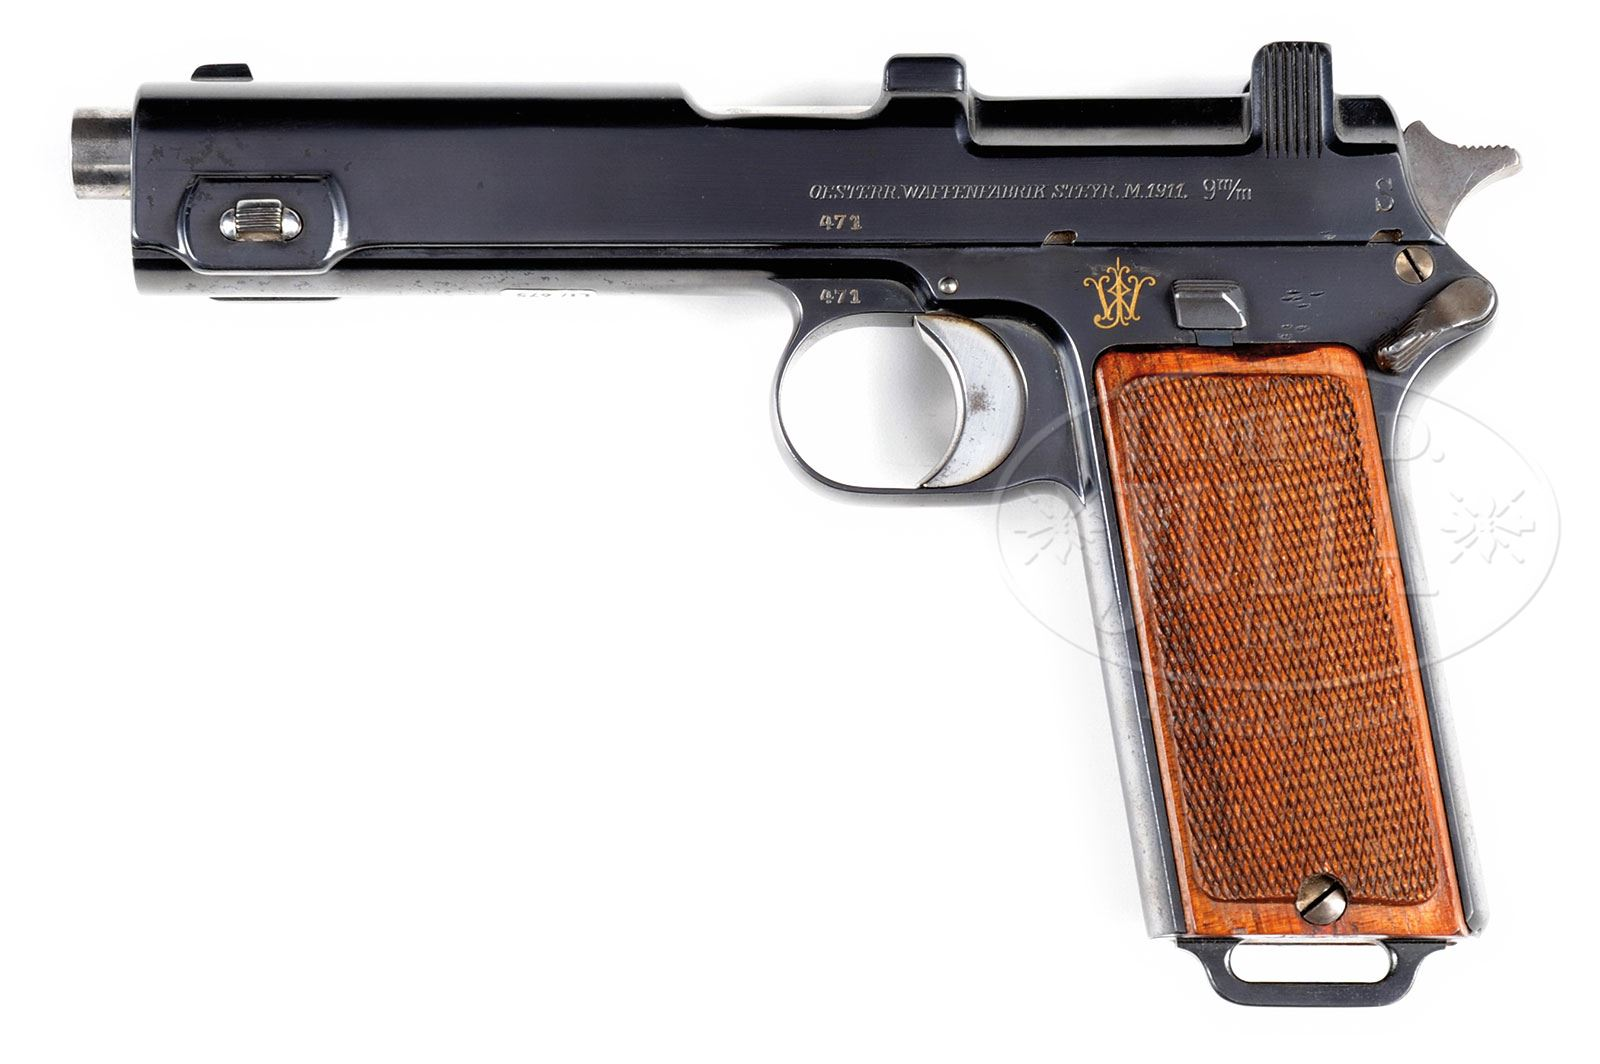 EARLY STEYR M1911, GOLD INITIALS, IN MARKED PRESENTATION CASE WITH